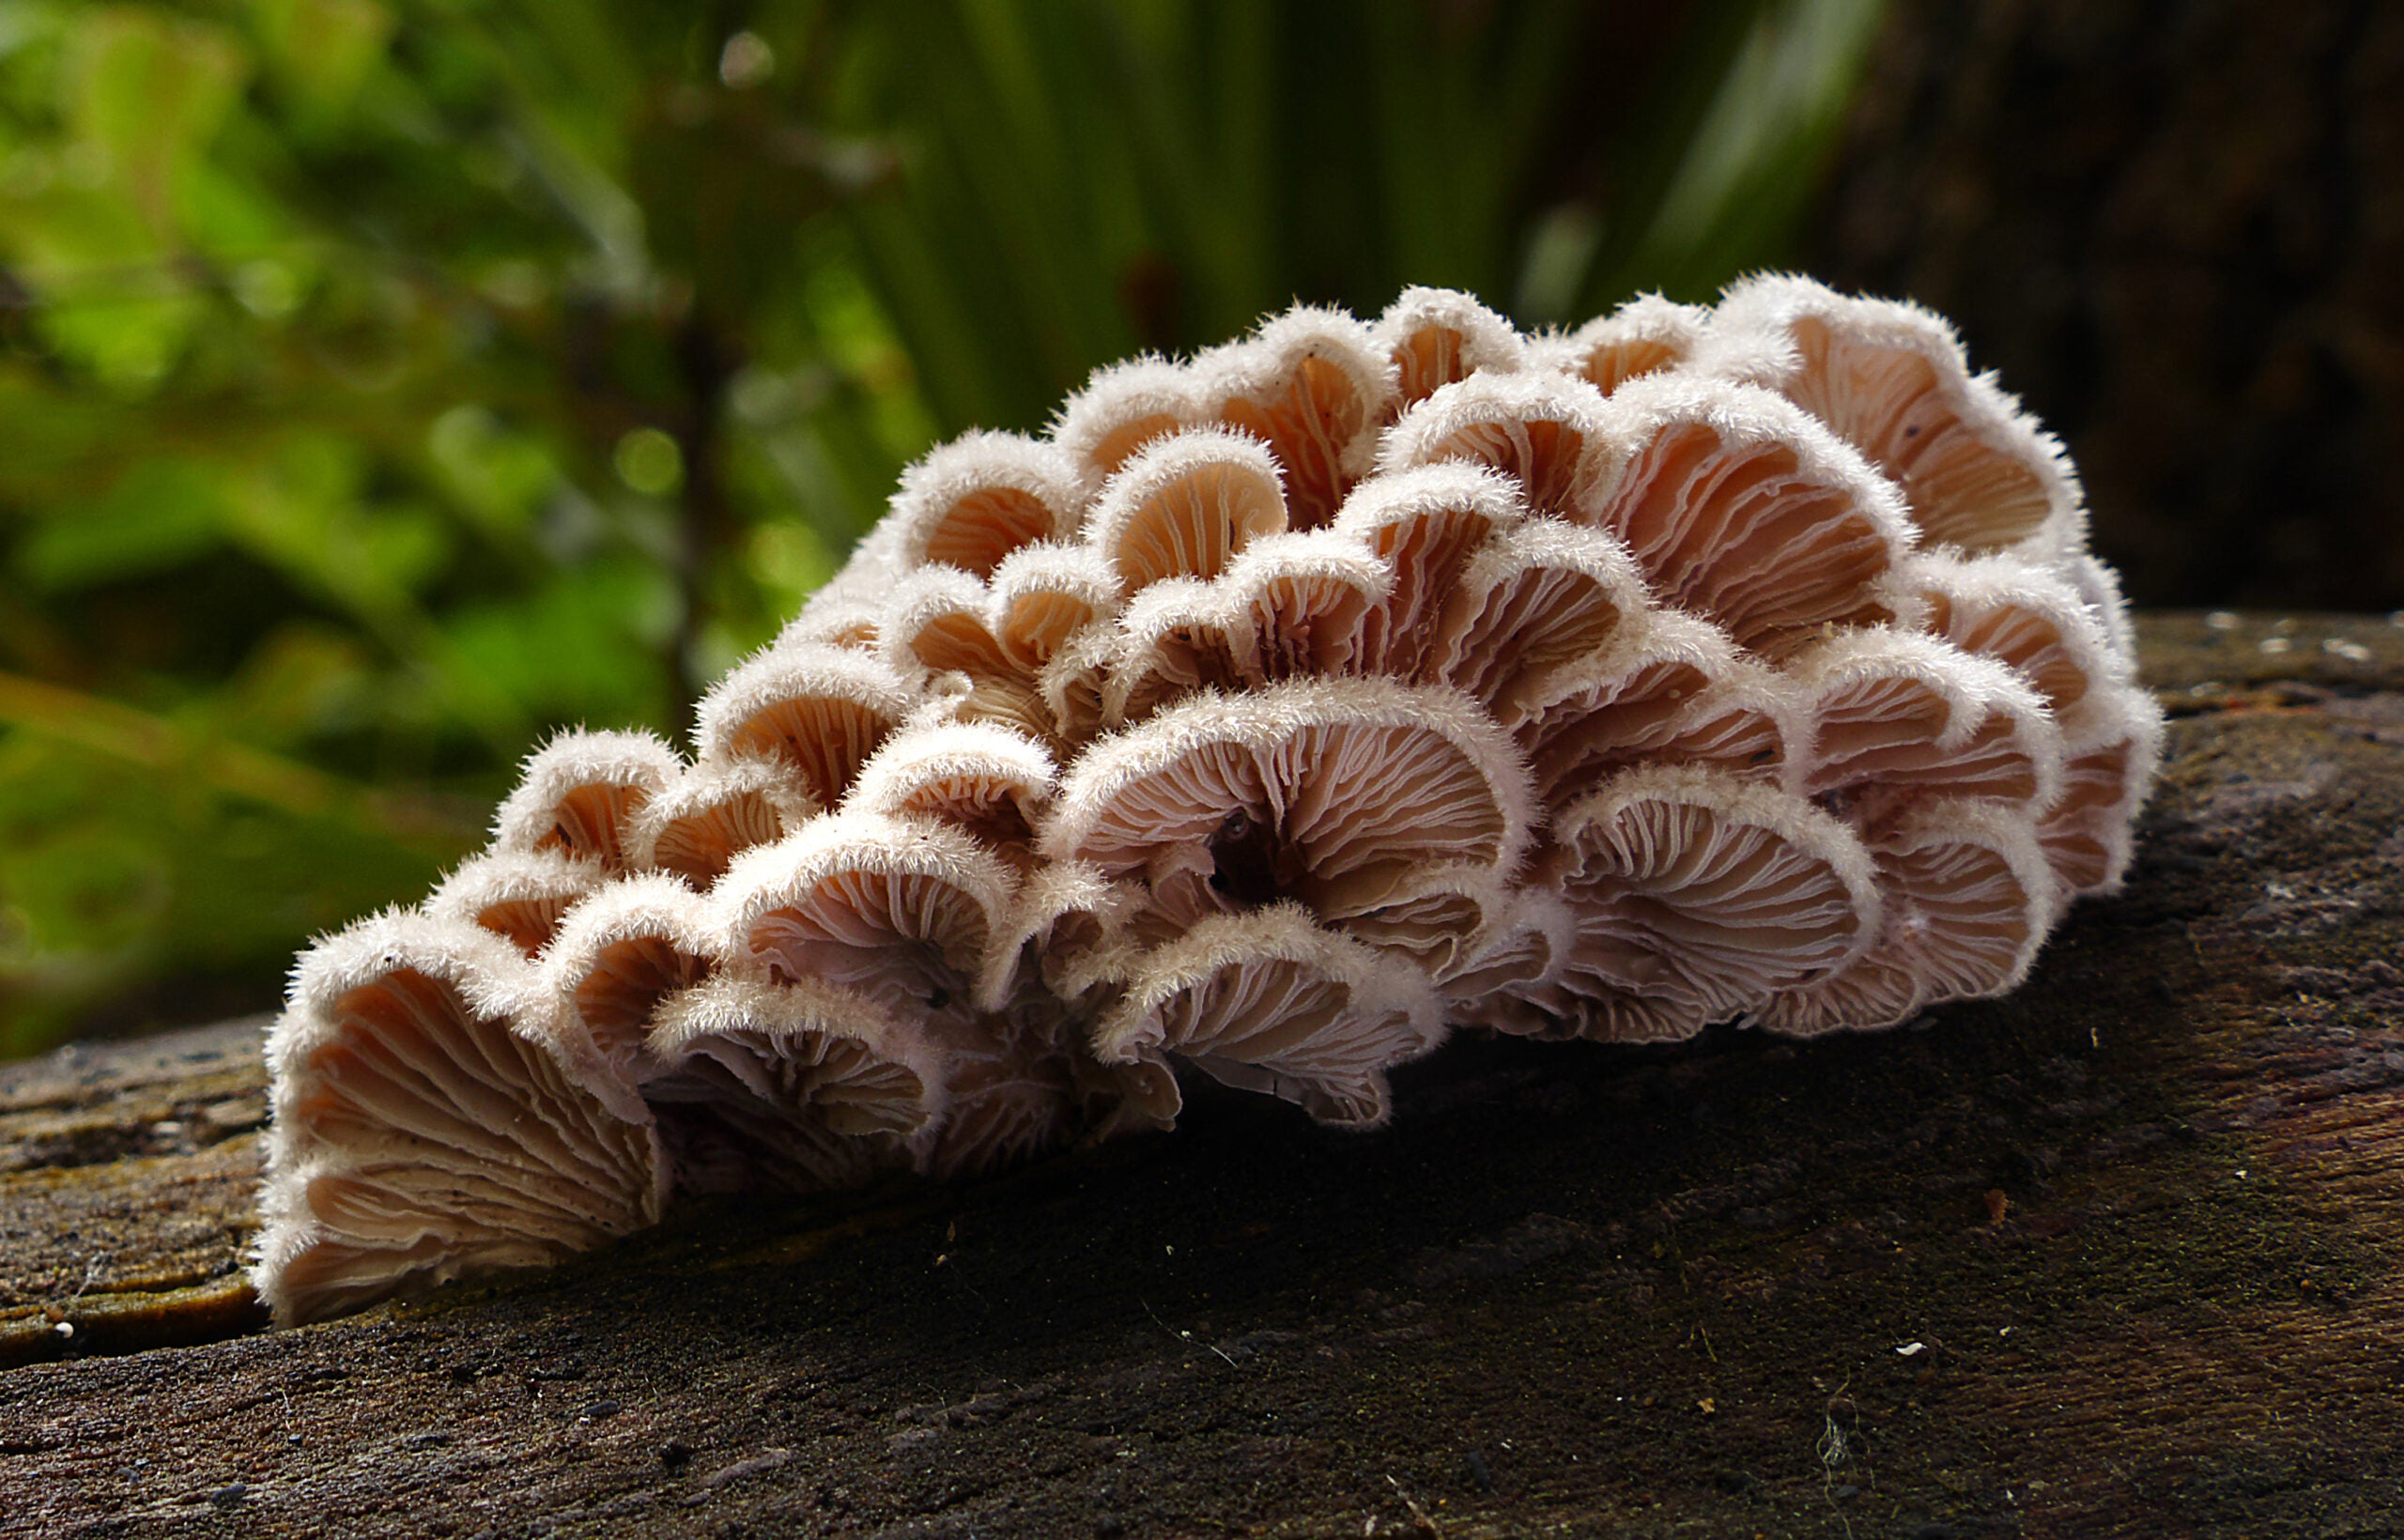 This fungus has over 23,000 sexes and no qualms about it